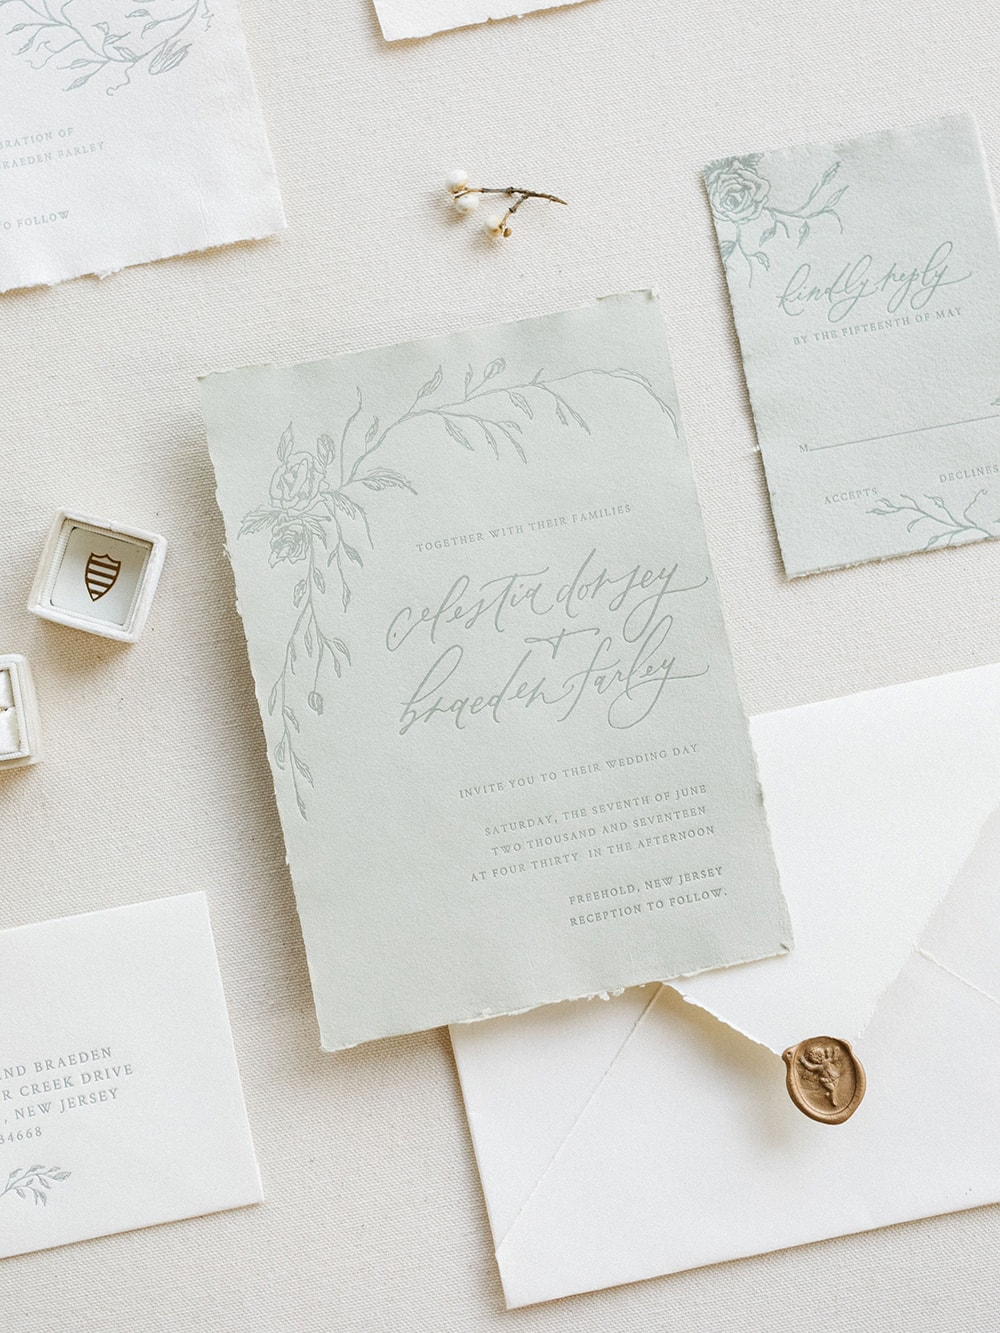 5 Simple Ways to Have a More Sustainable Wedding | Owl Post Calligraphy